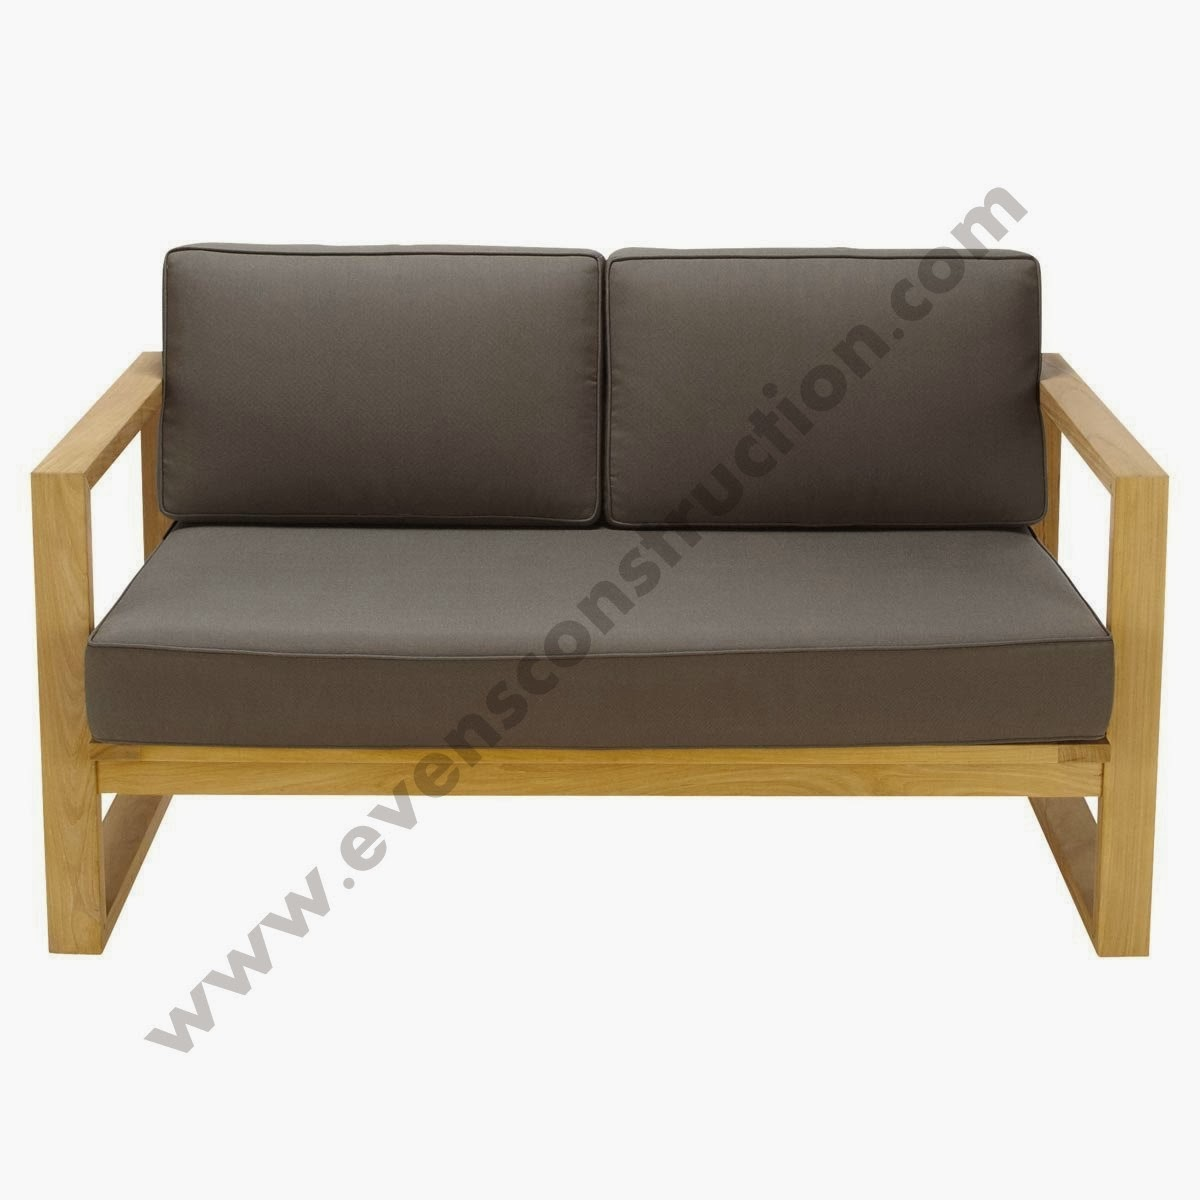 Evens construction pvt ltd wooden sofas gallery for Sofa 4 meter